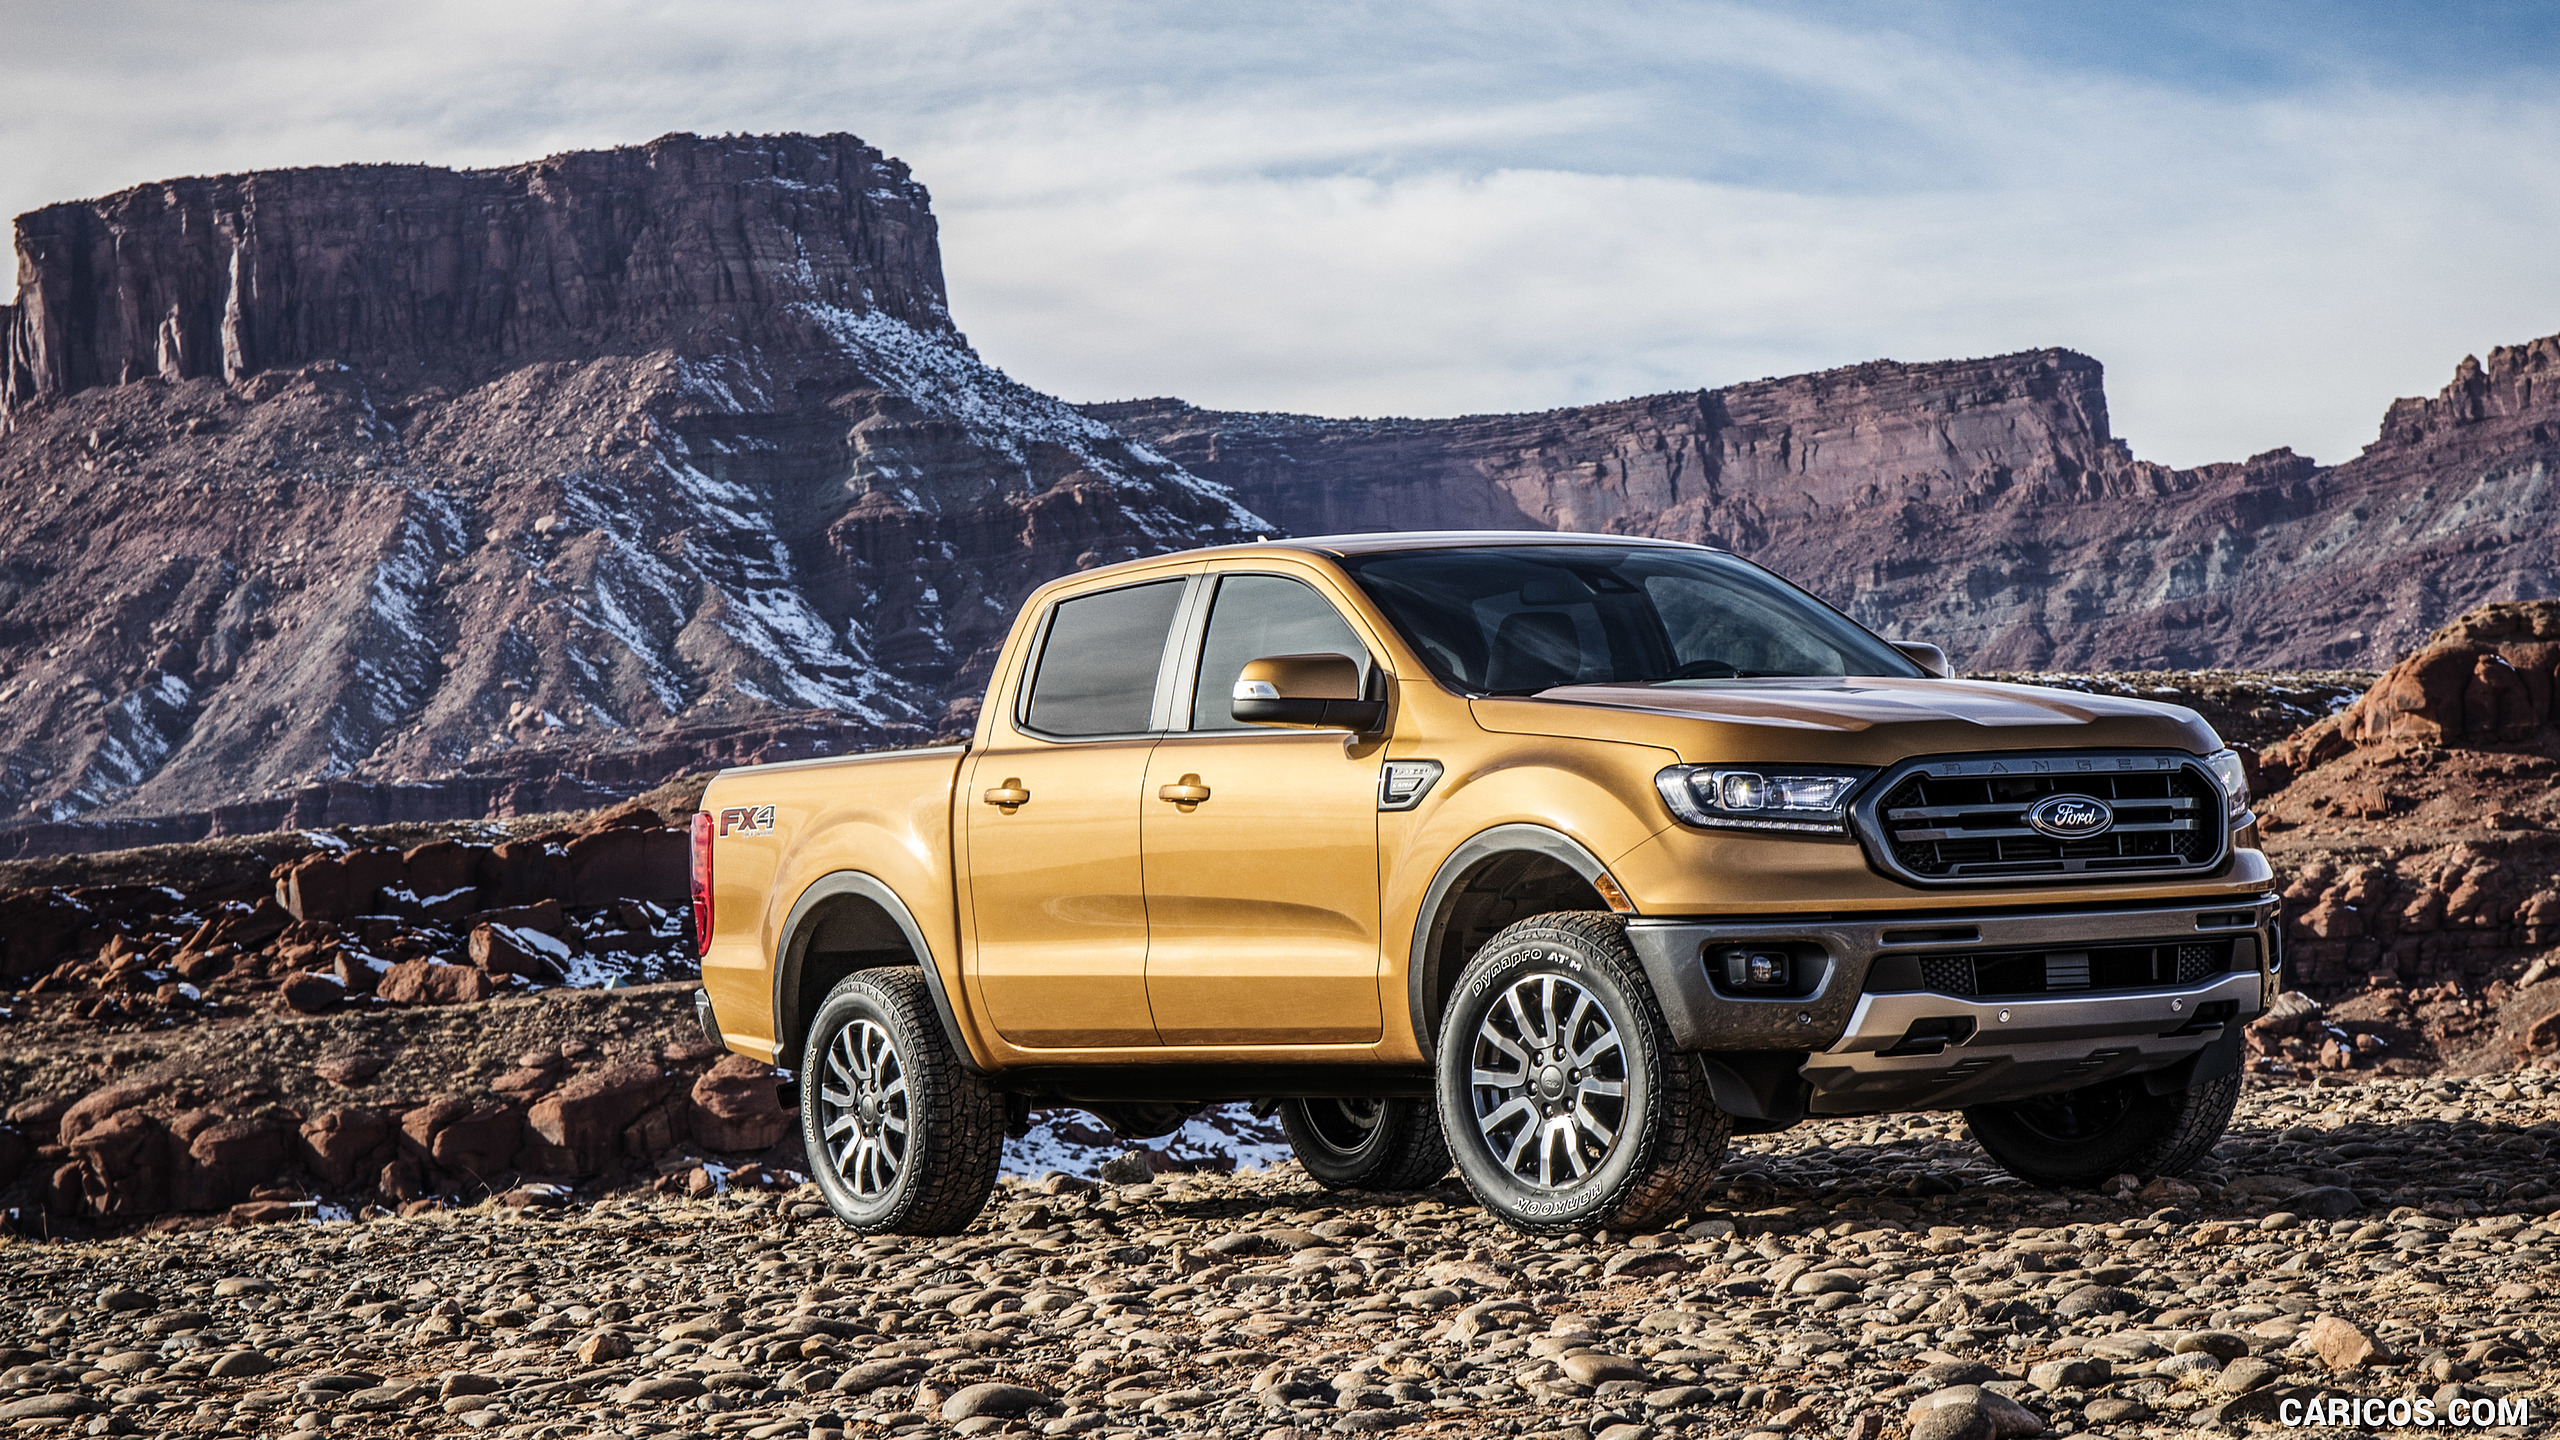 2560x1440 - Ford Ranger Wallpapers 14